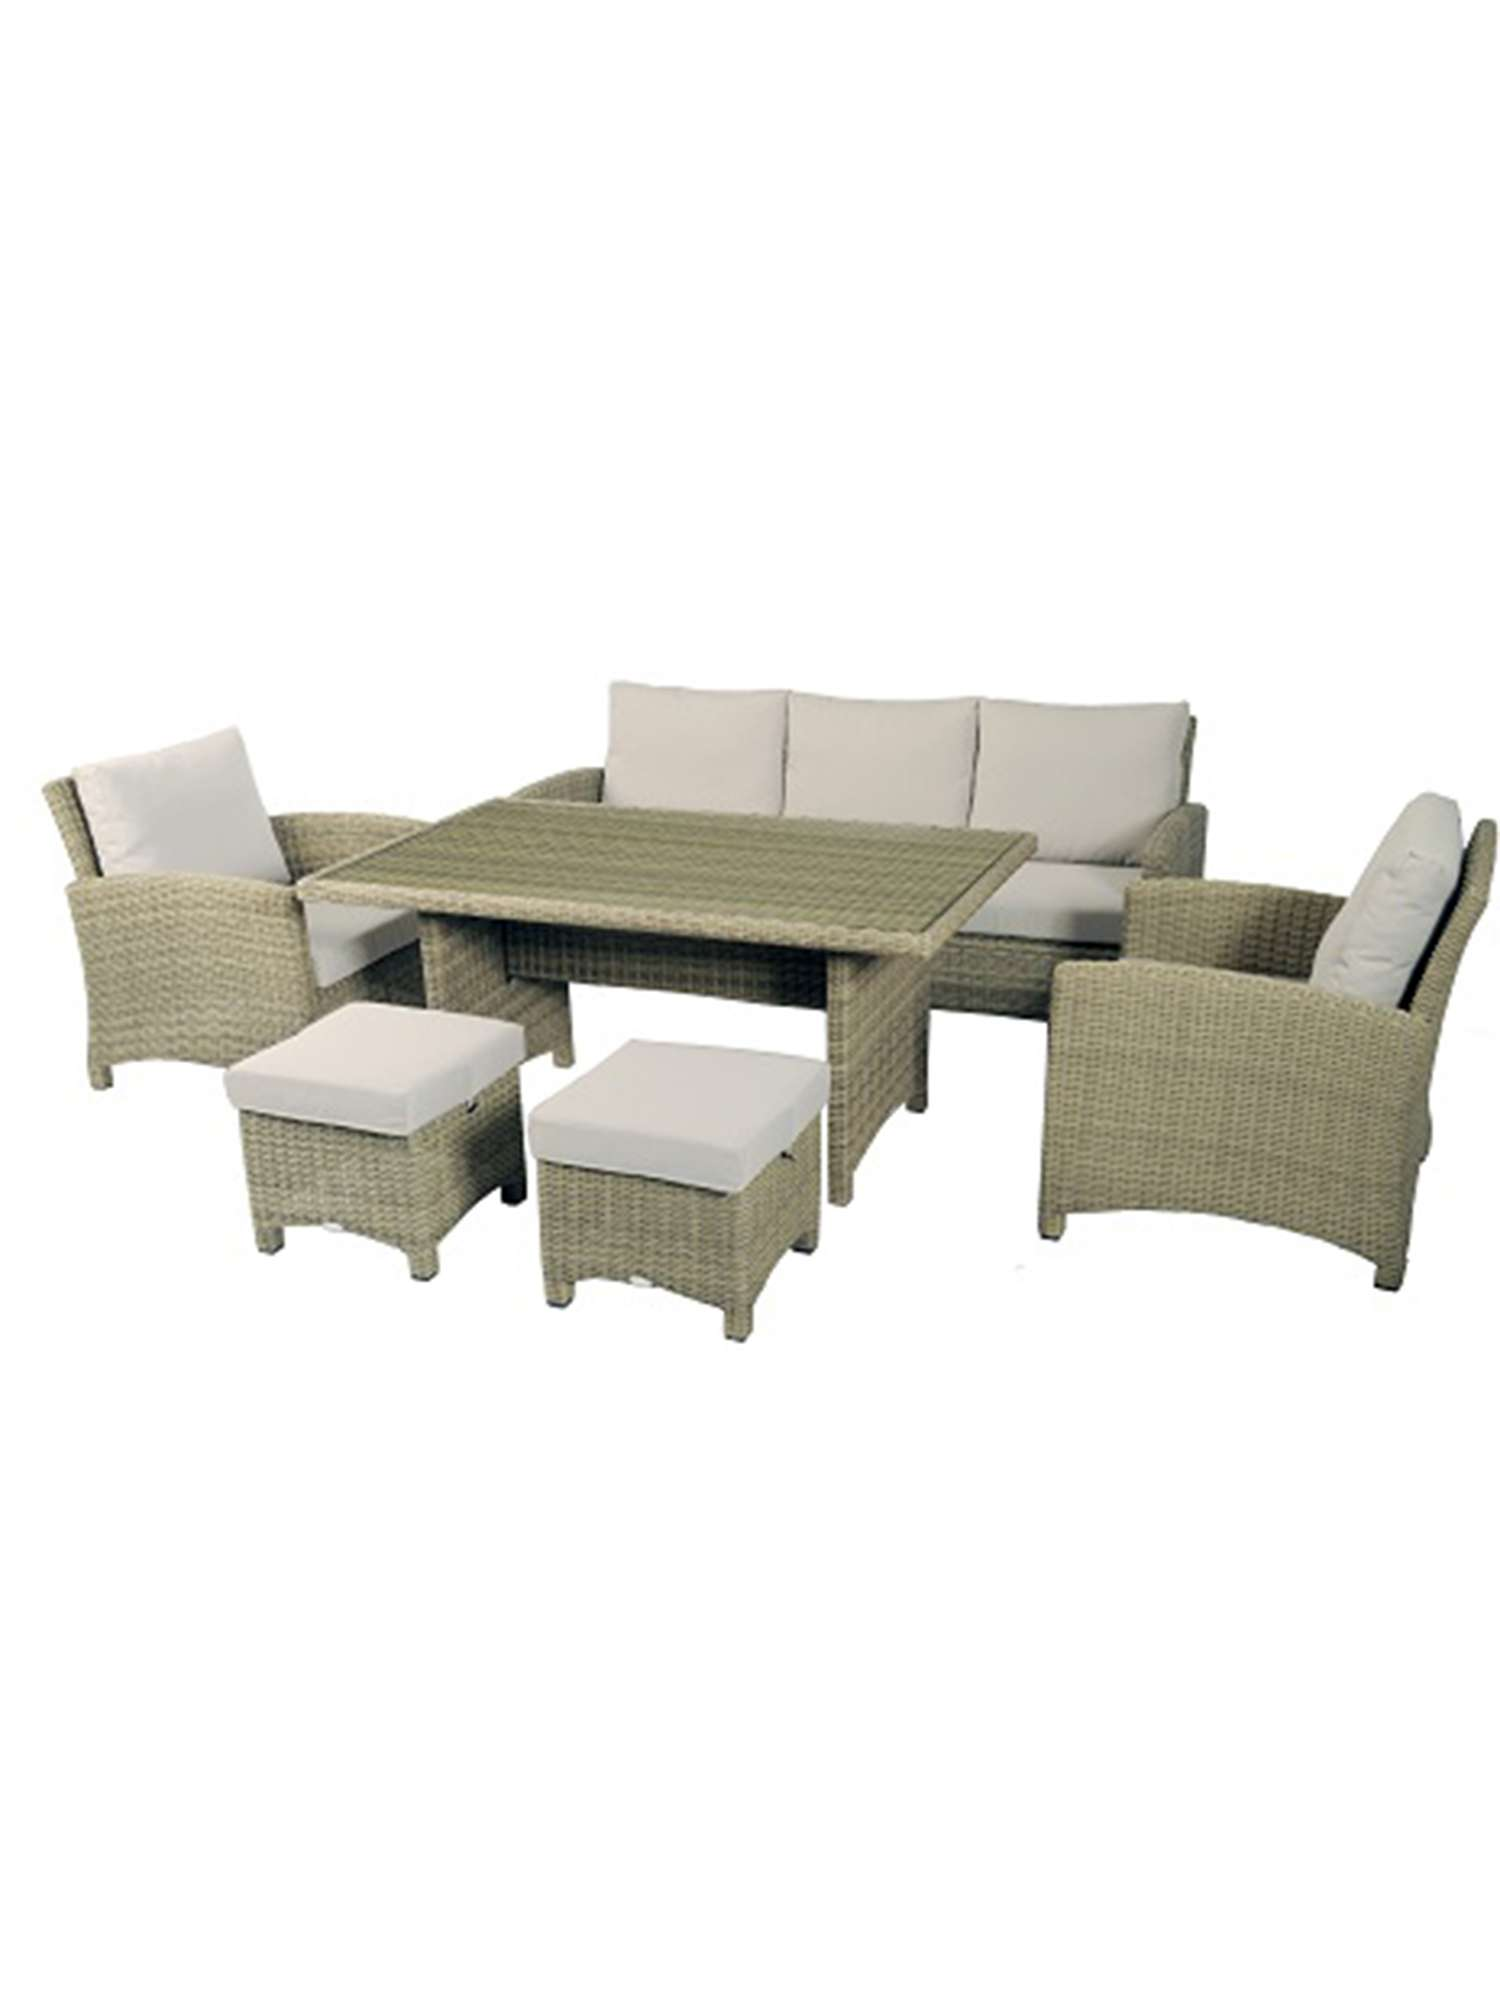 Naunton Manor Cotswold Casual Dining Set. Garden Furniture at House of Fraser